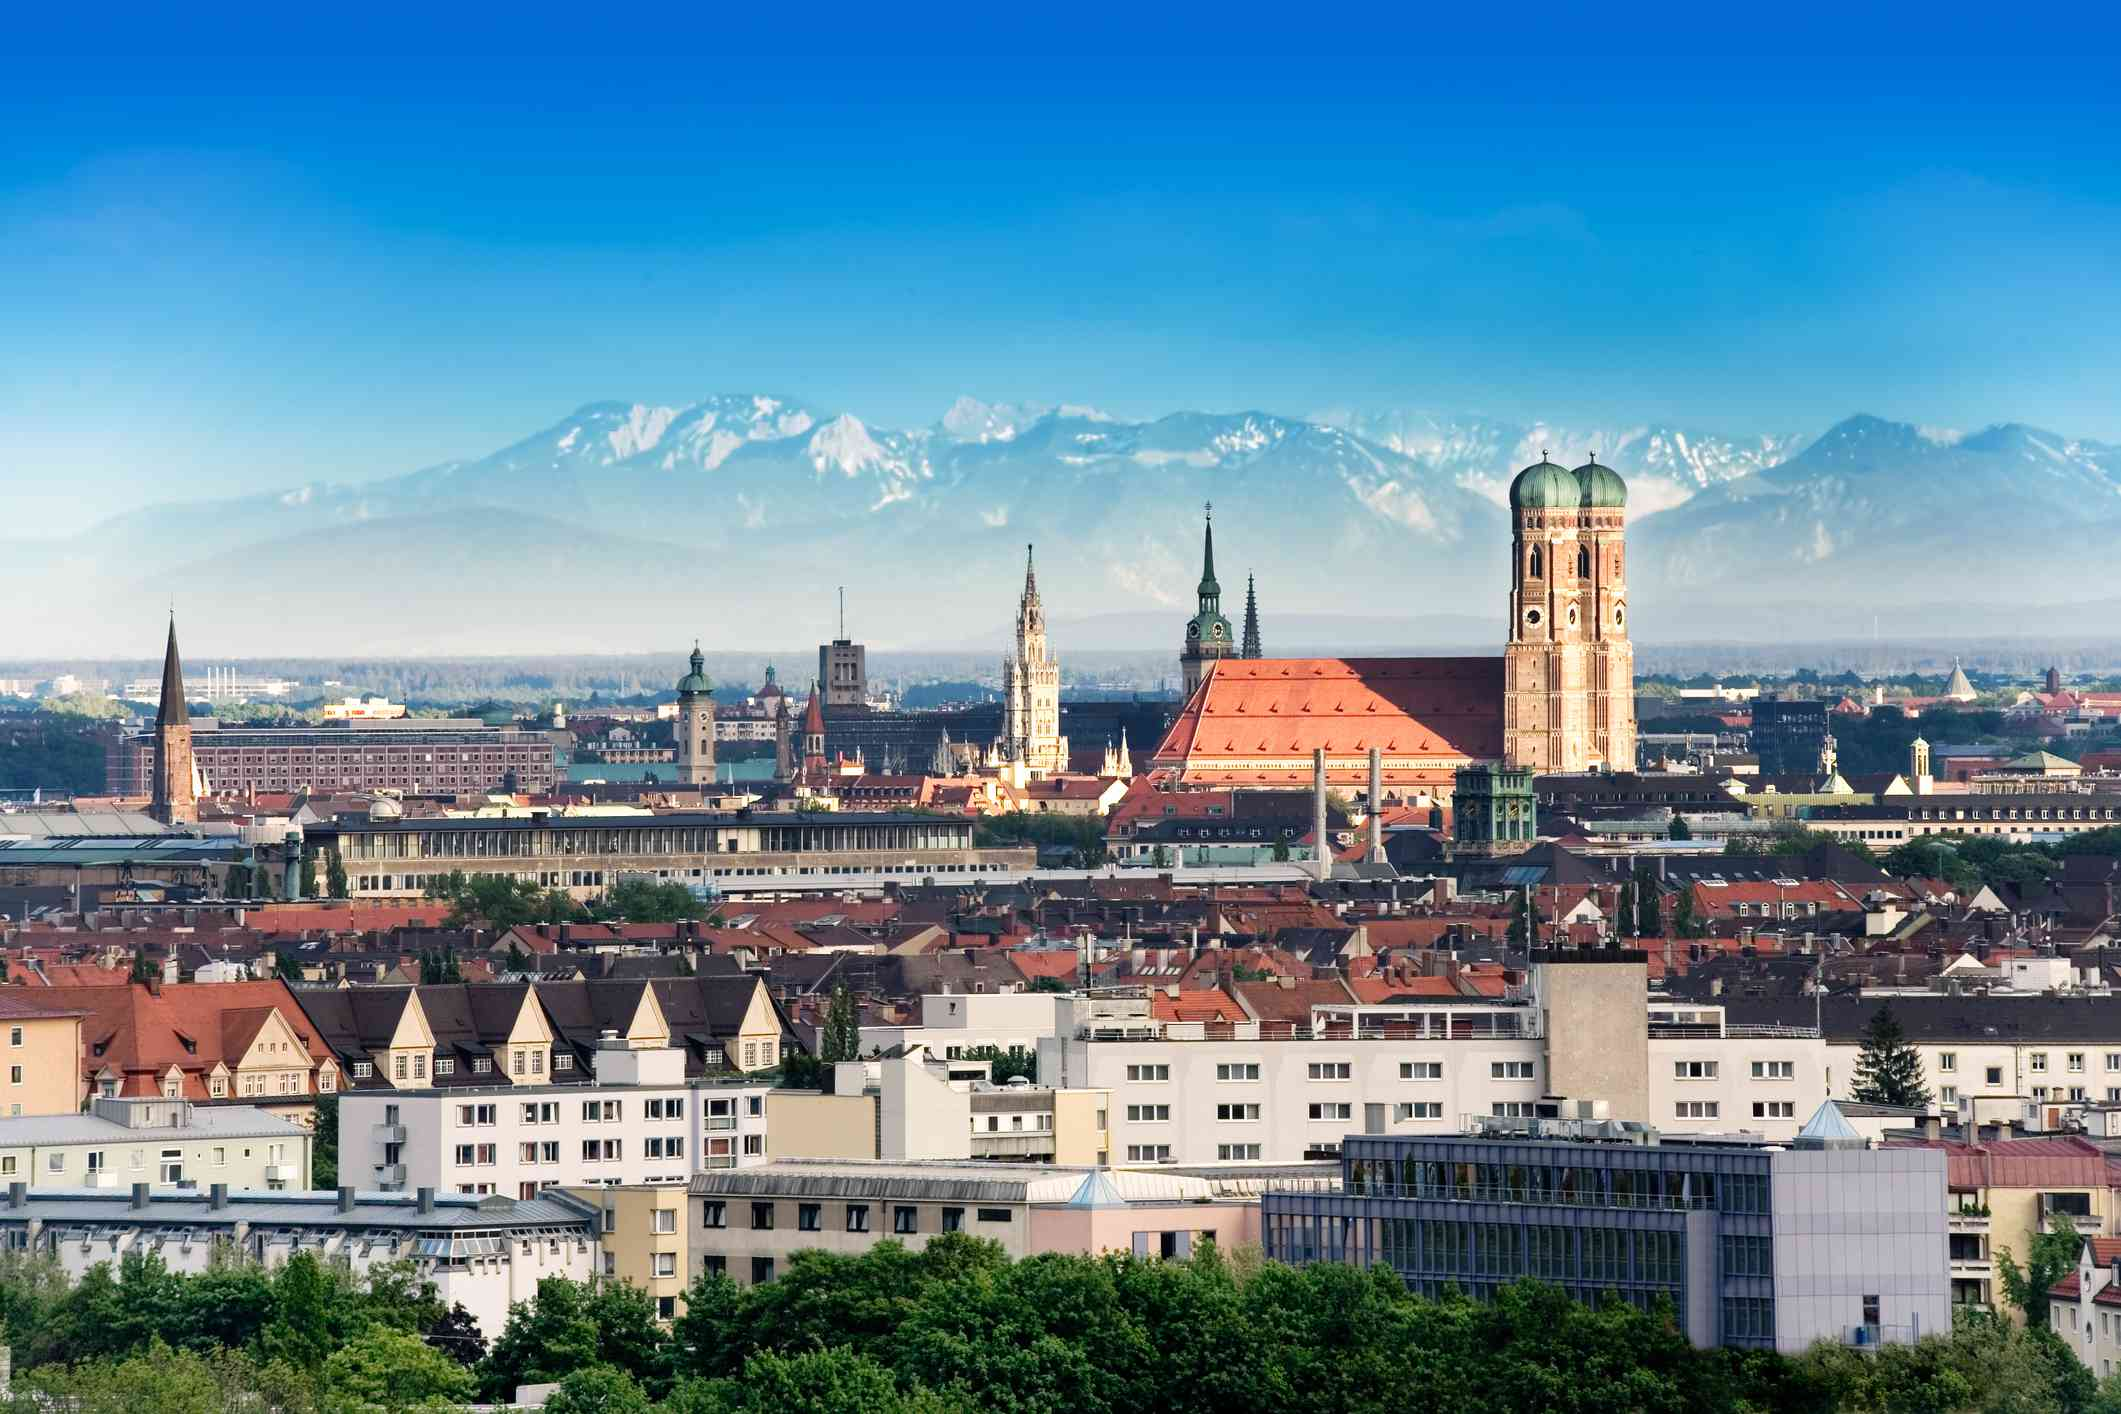 Munich, the capital of Germany, with the alps in the background